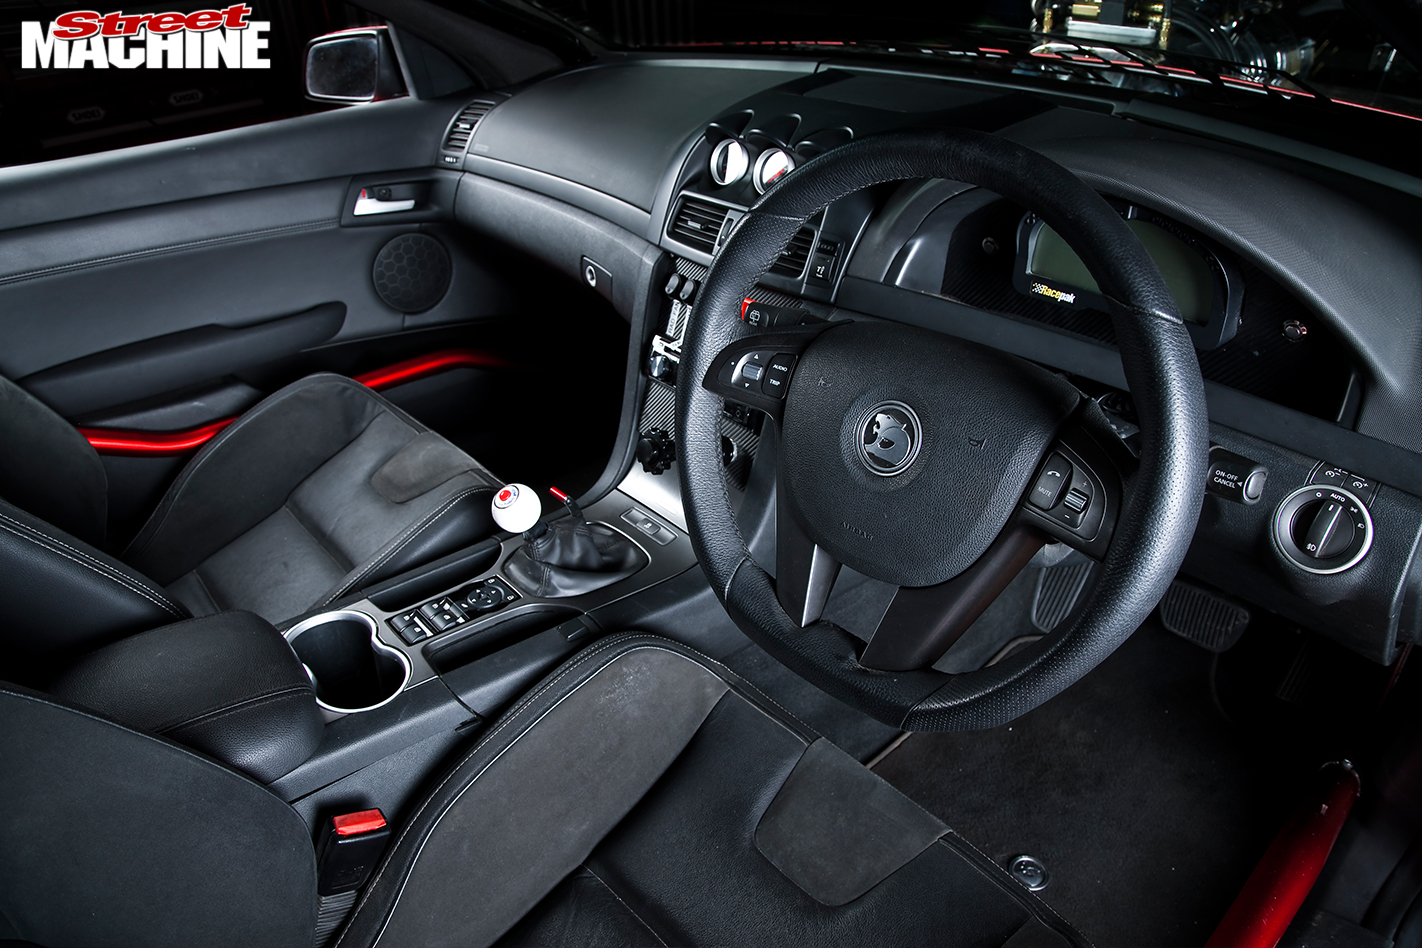 Holden -VE-commodore -wagon -interior -front